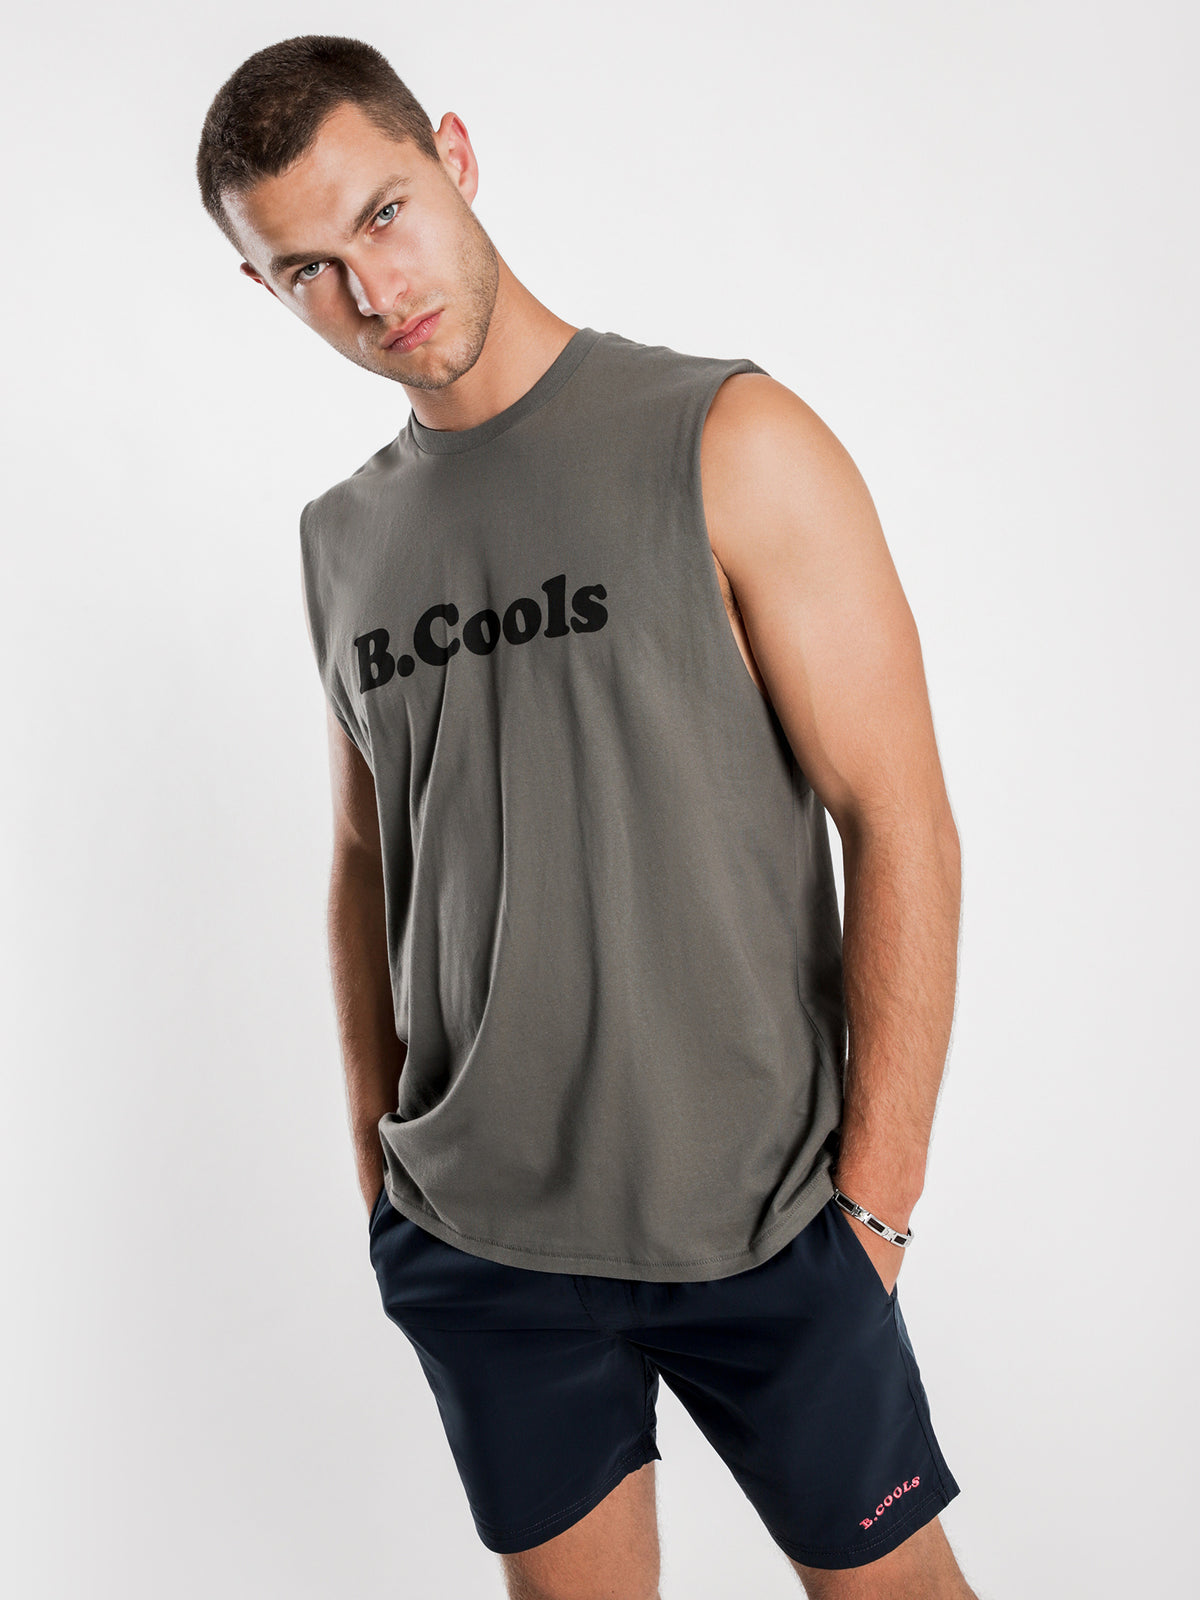 B.Cools Retro Muscle T-Shirt in Bottle Green